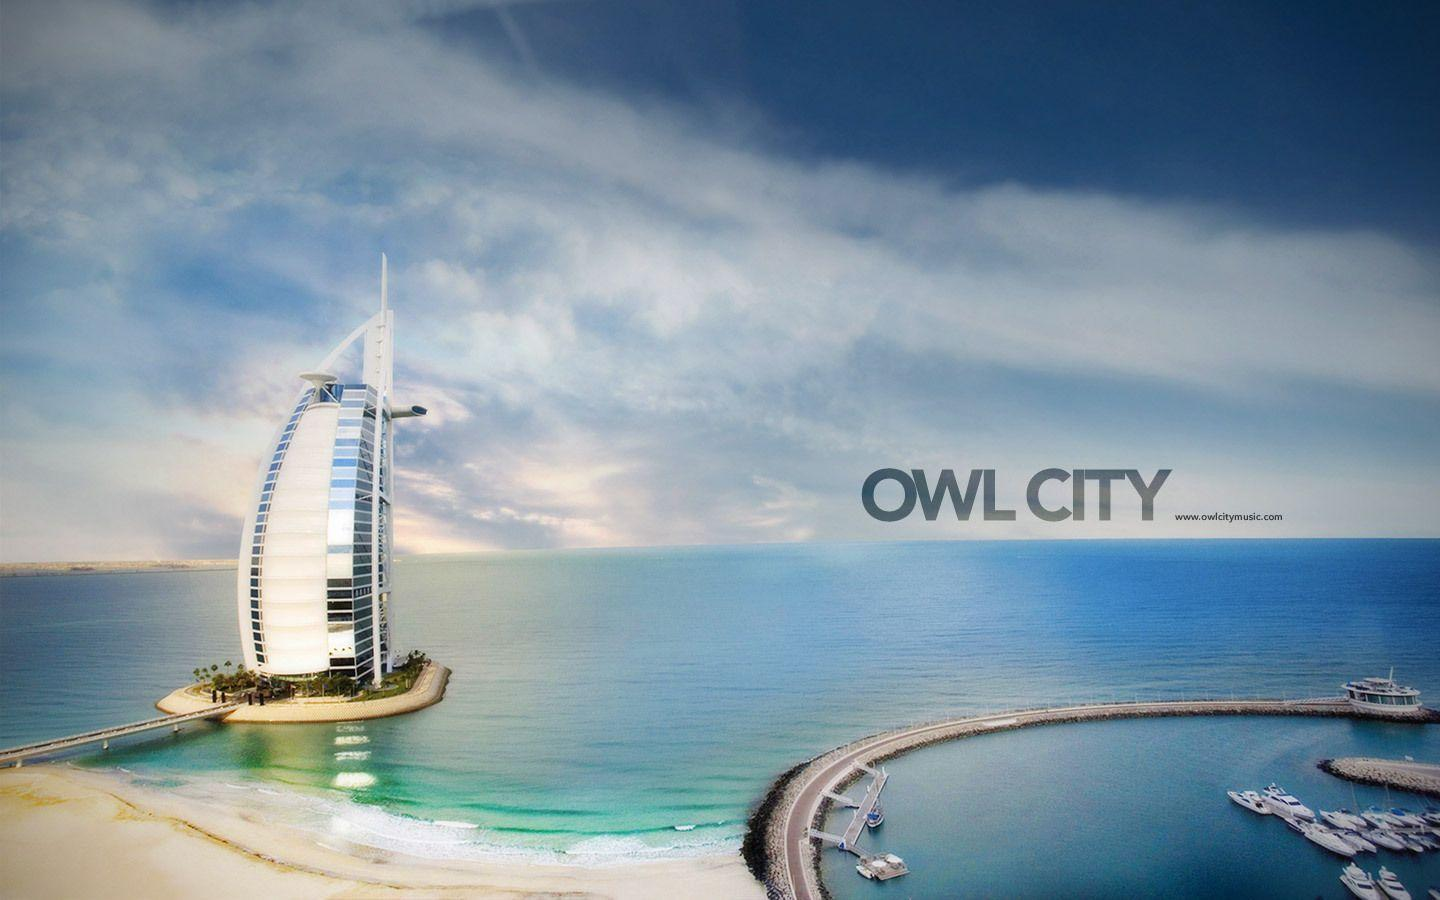 Owl City Wallpapers - Wallpaper Cave